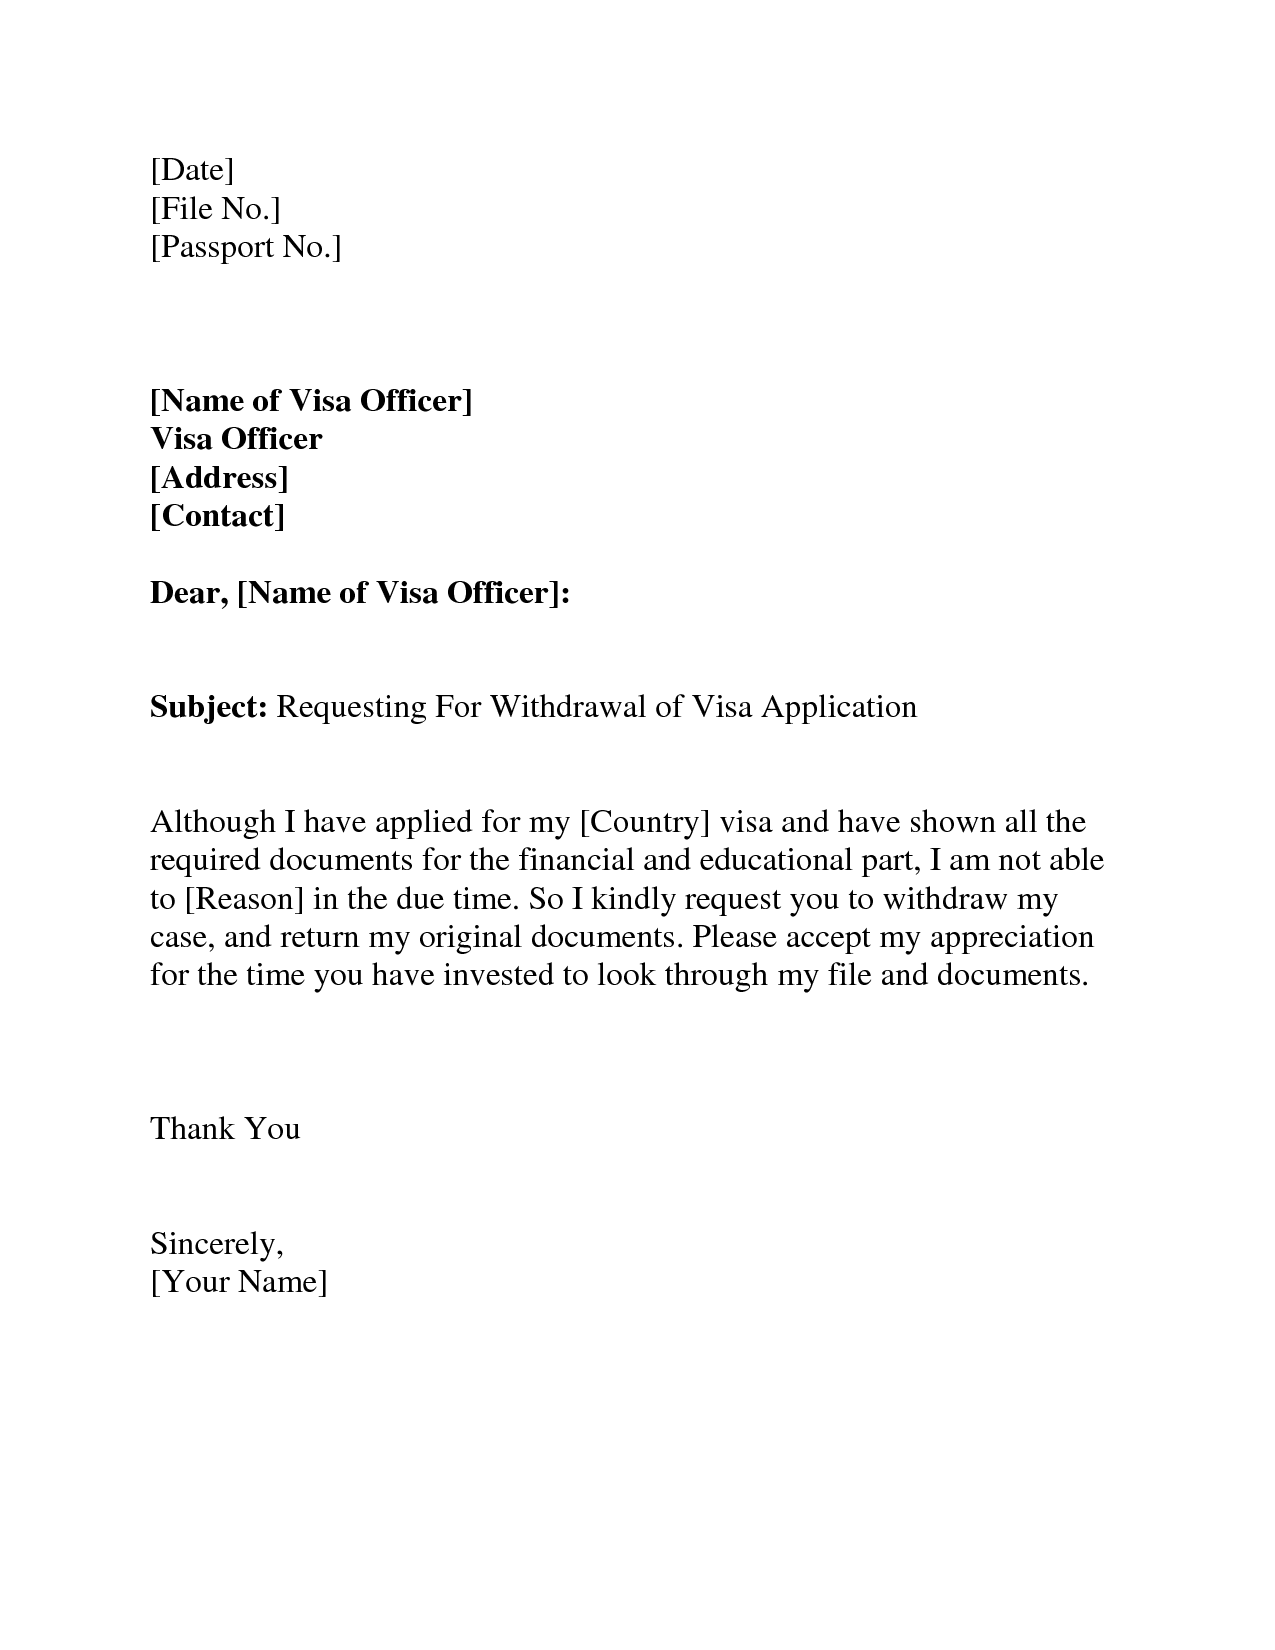 visa withdrawal letter request letter format letter and emailvisa invitation letter to a friend example application letter sample